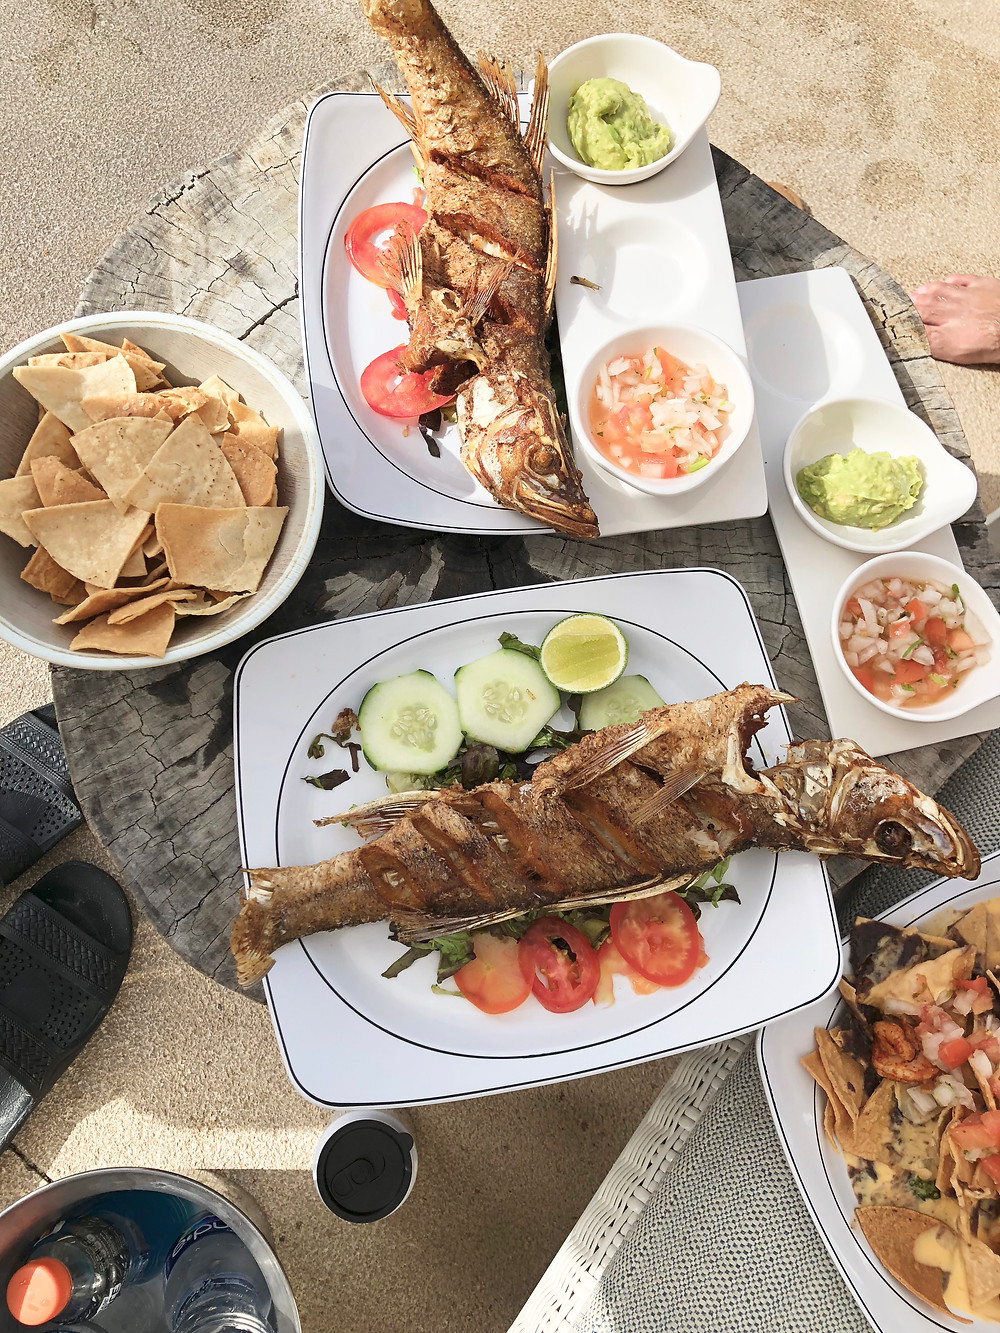 poolside eats: catch of the day - unico 20 87 // sunnyinjune.com